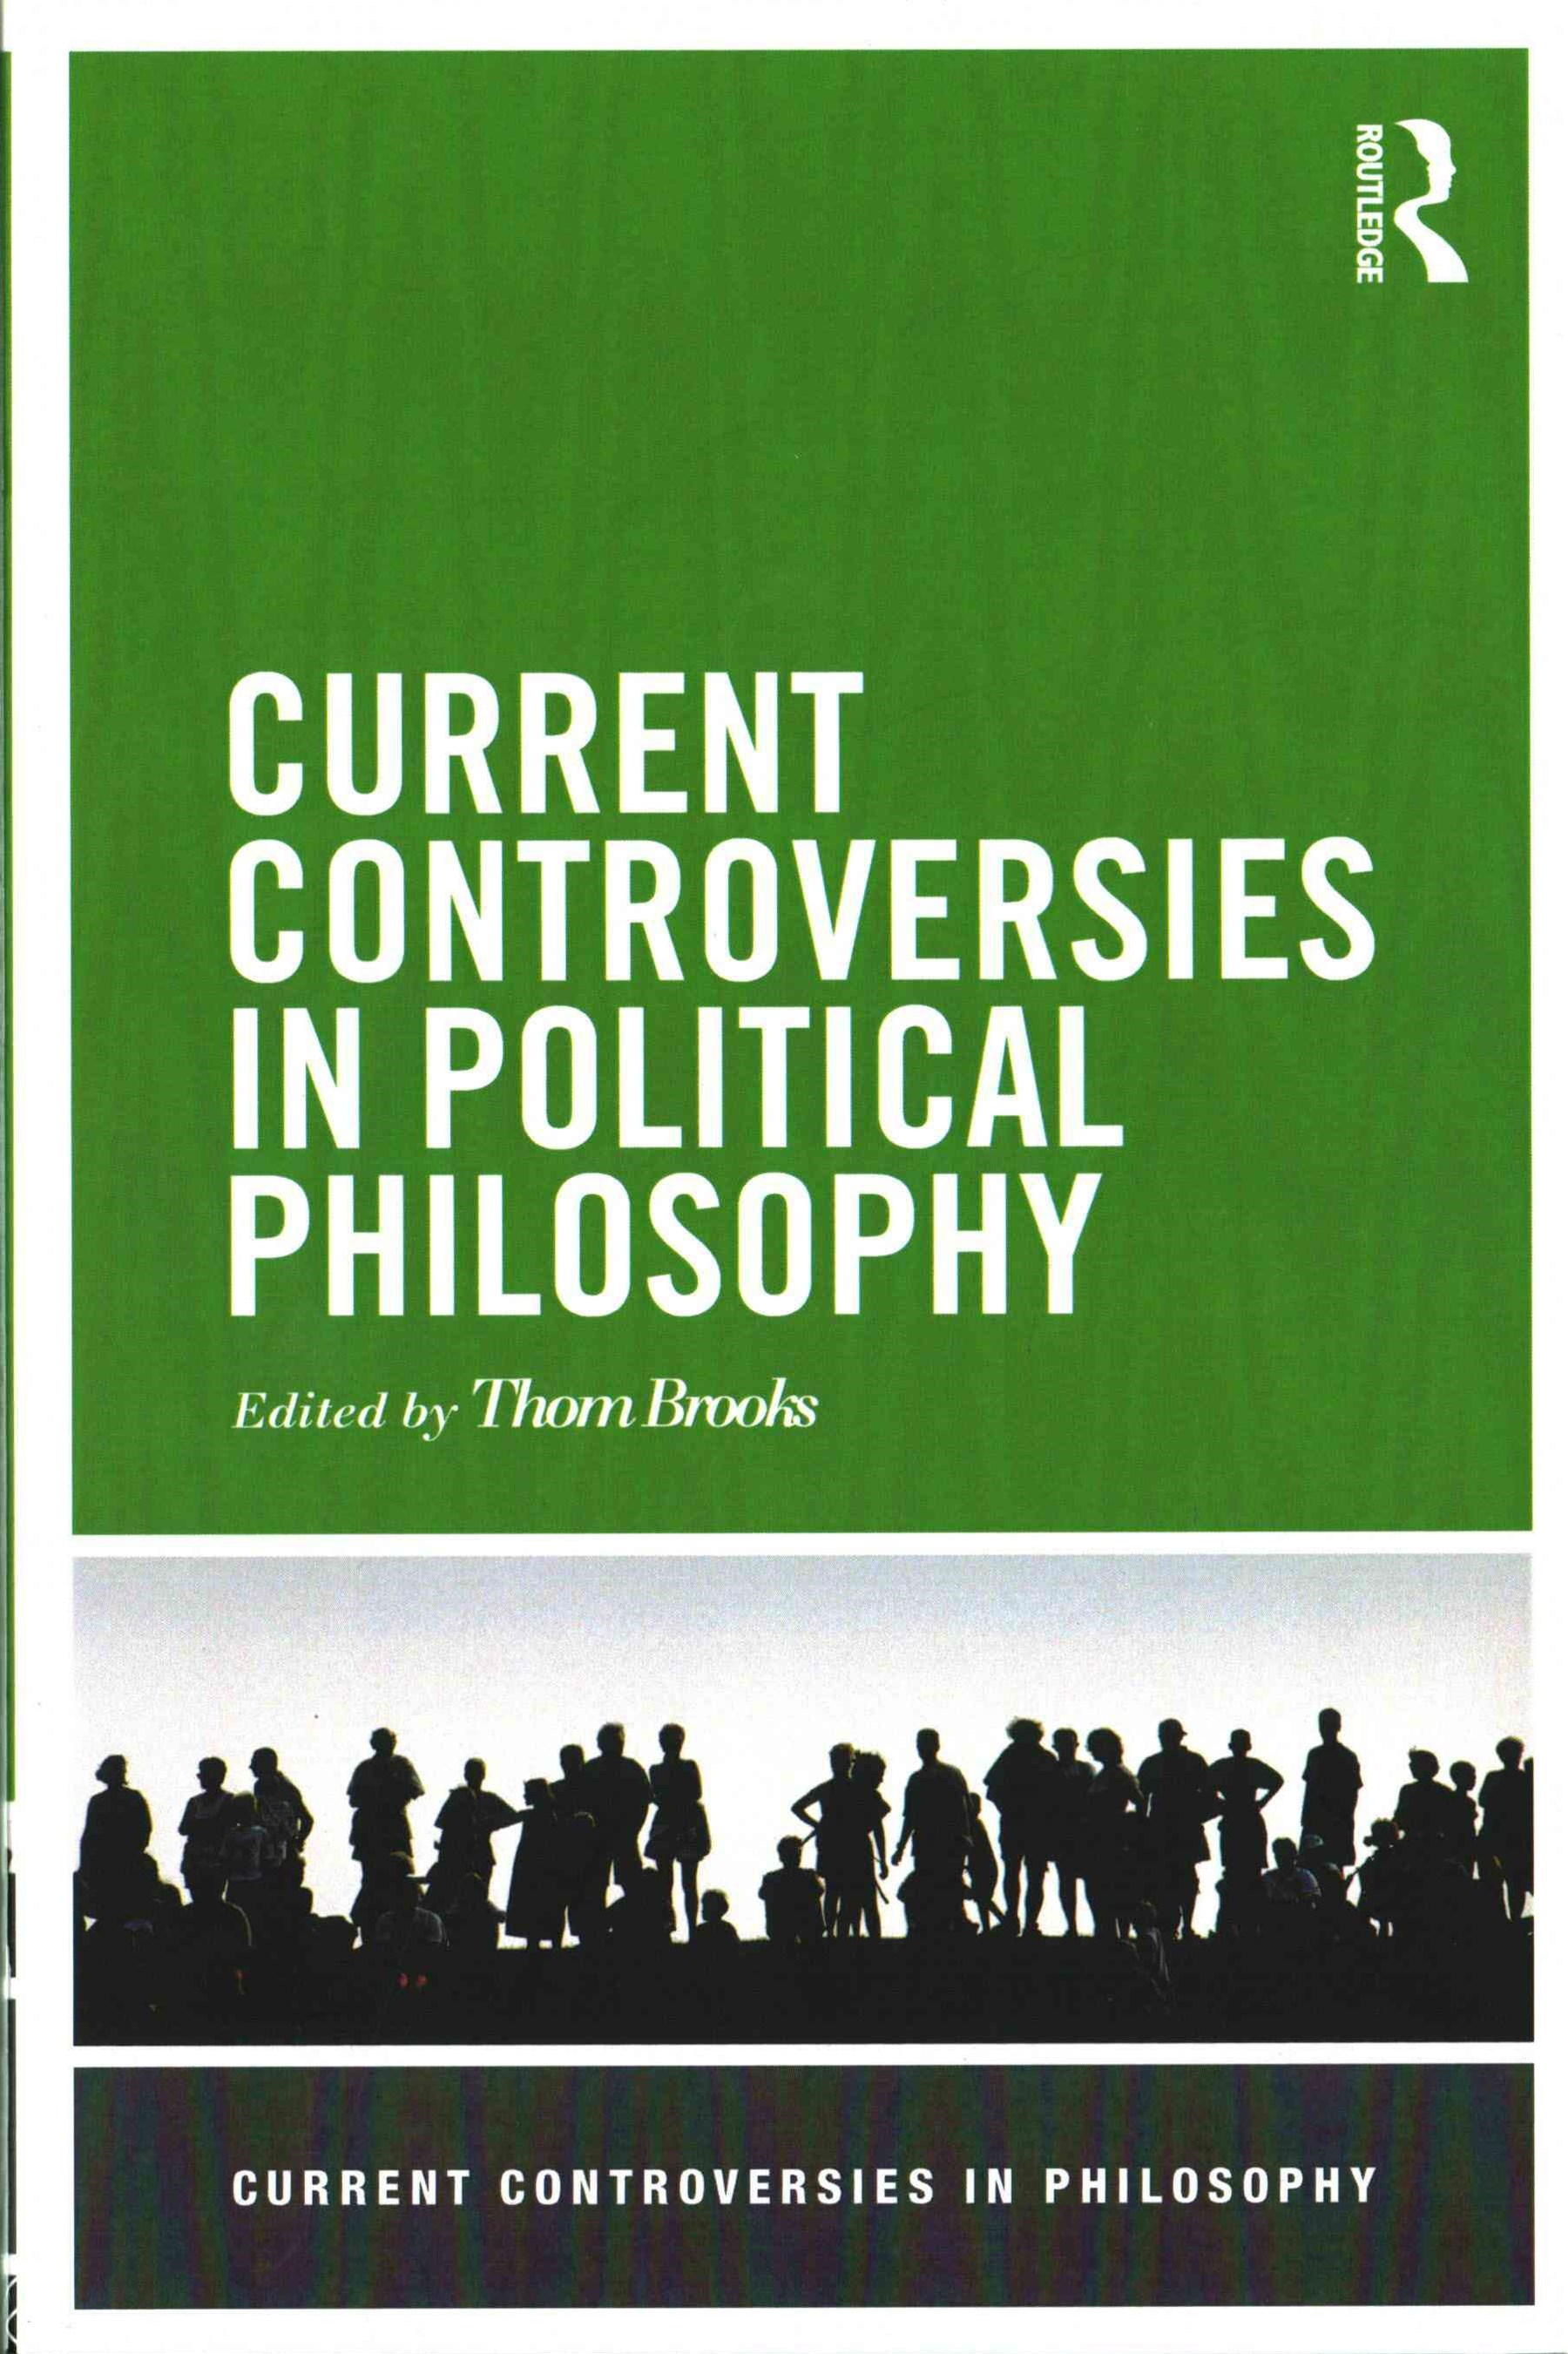 Current Controversies in Political Philosophy